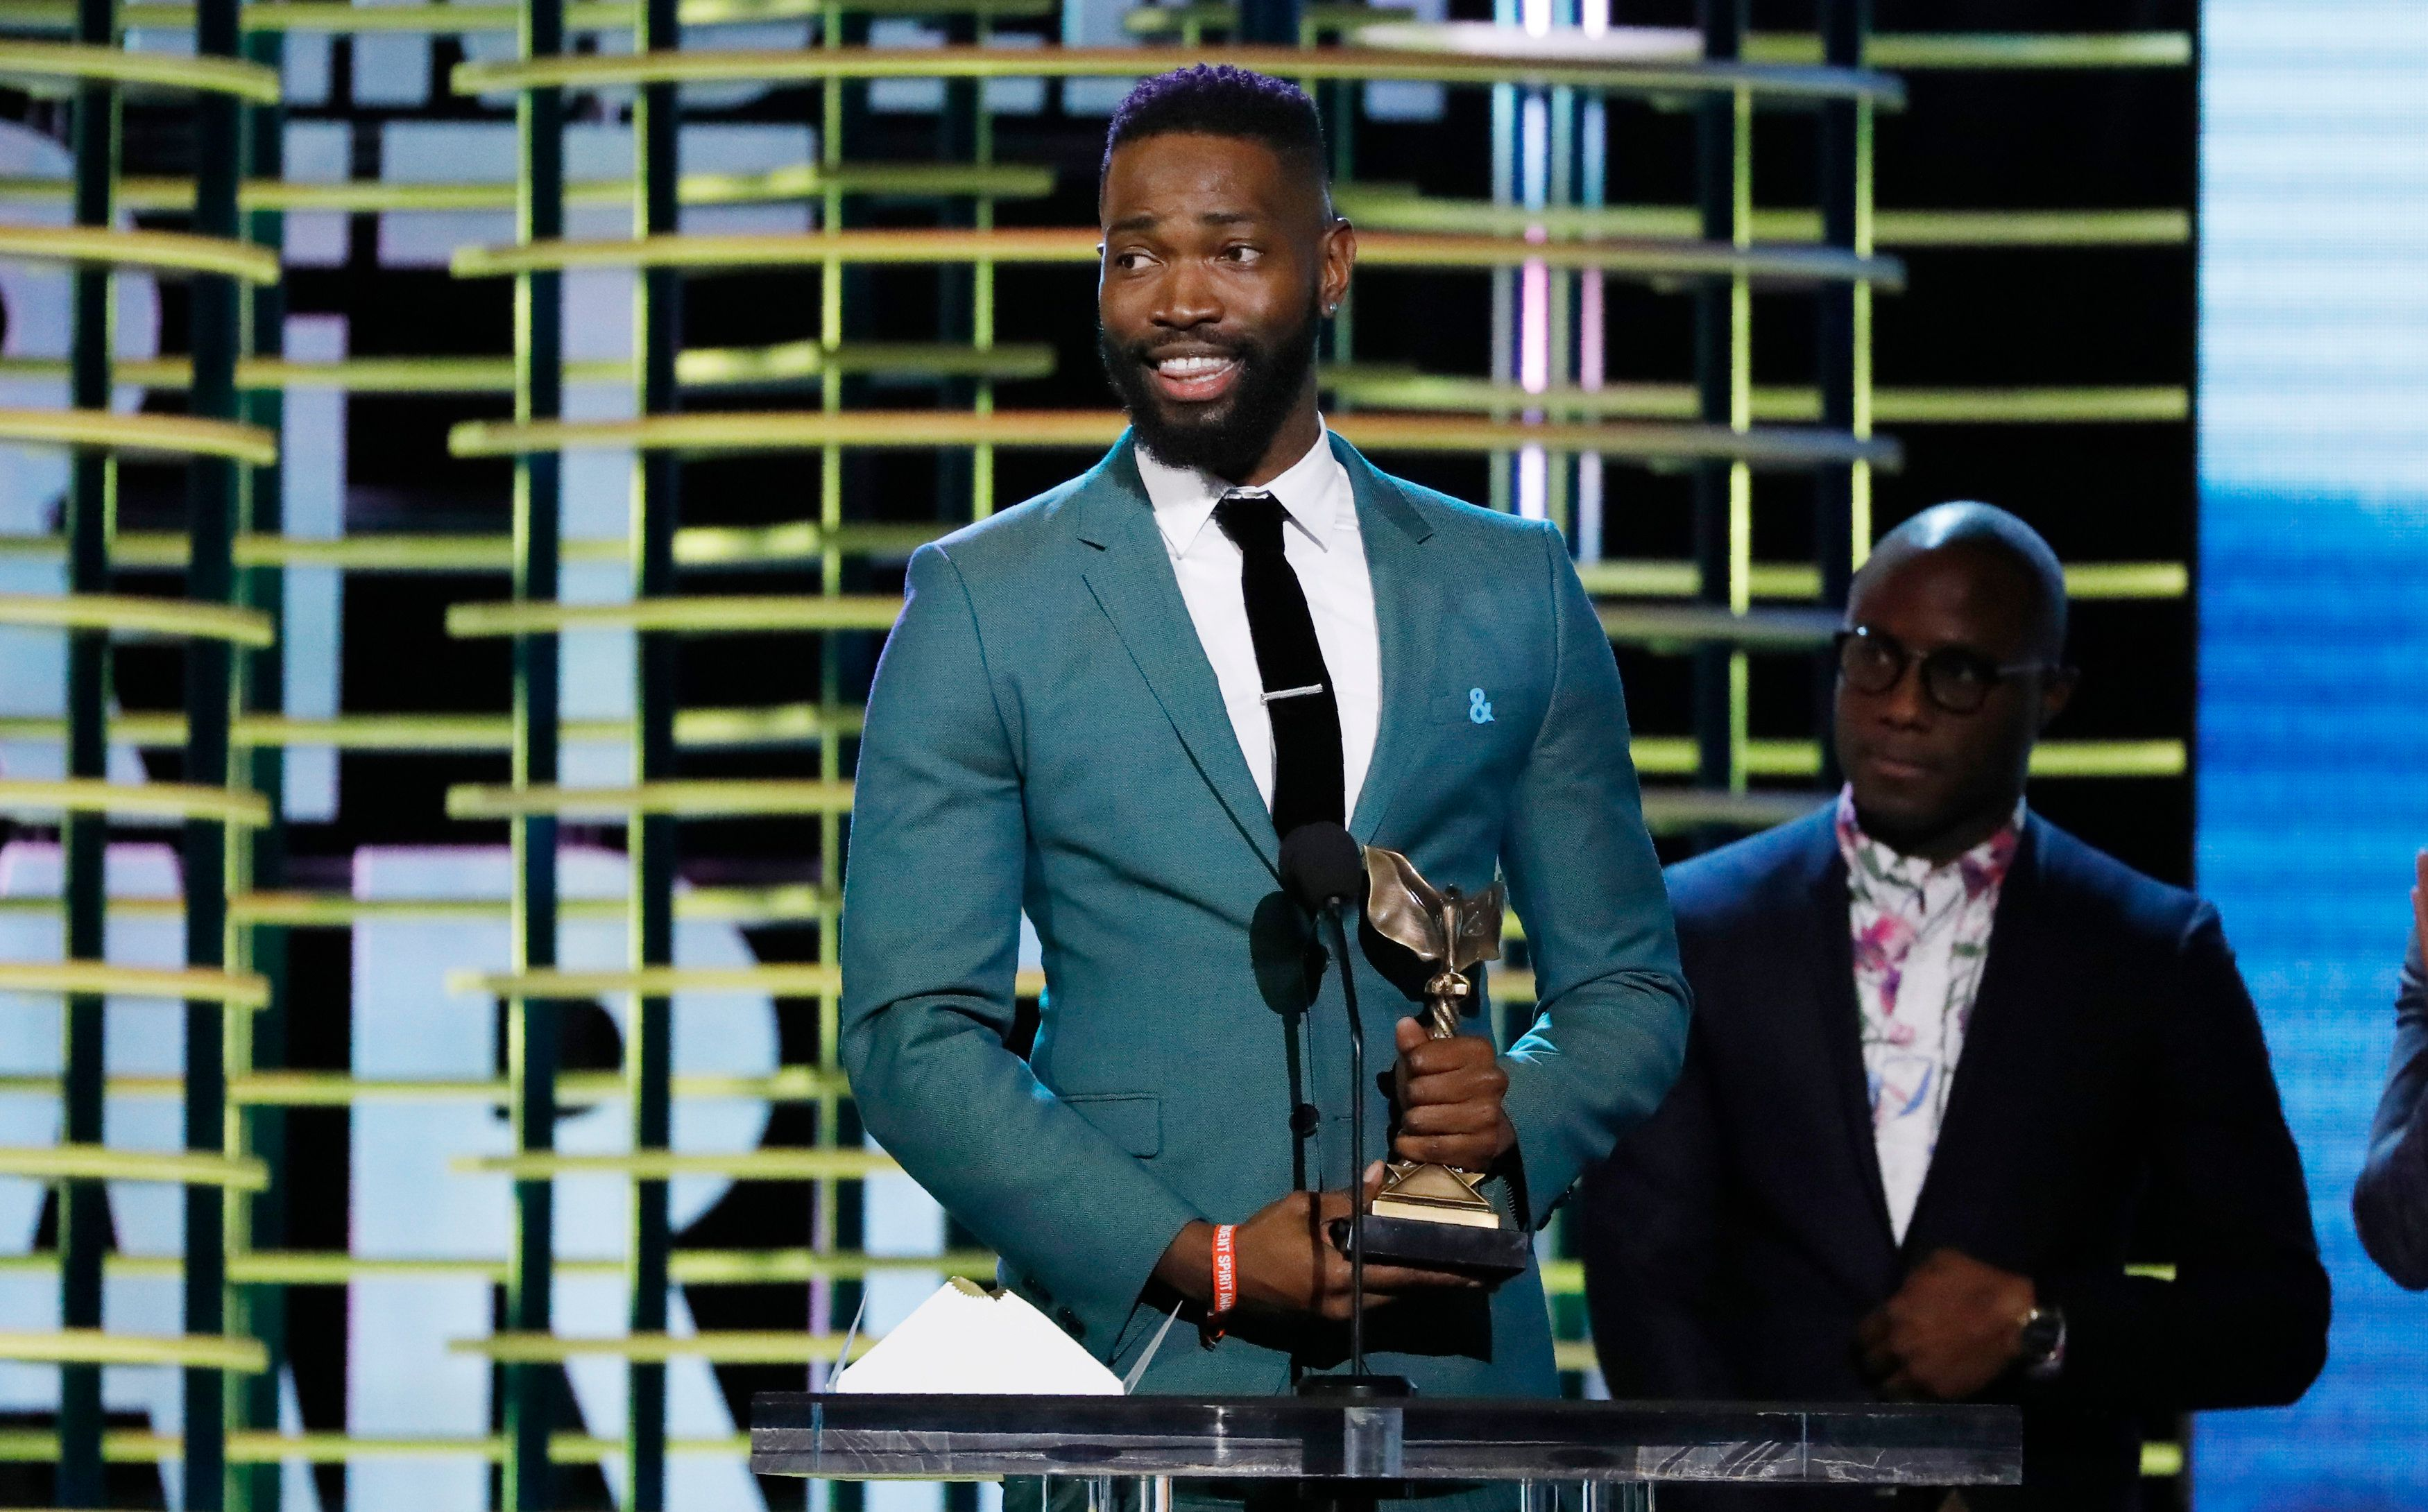 """Tarell Alvin McCraney (L) and Barry Jenkins accept the Best Screenplay award for the film """"Moonlight"""" at the 2017 Film Independent Spirit Awards in Santa Monica, California, U.S., February 25, 2017. REUTERS/Mario Anzuoni"""